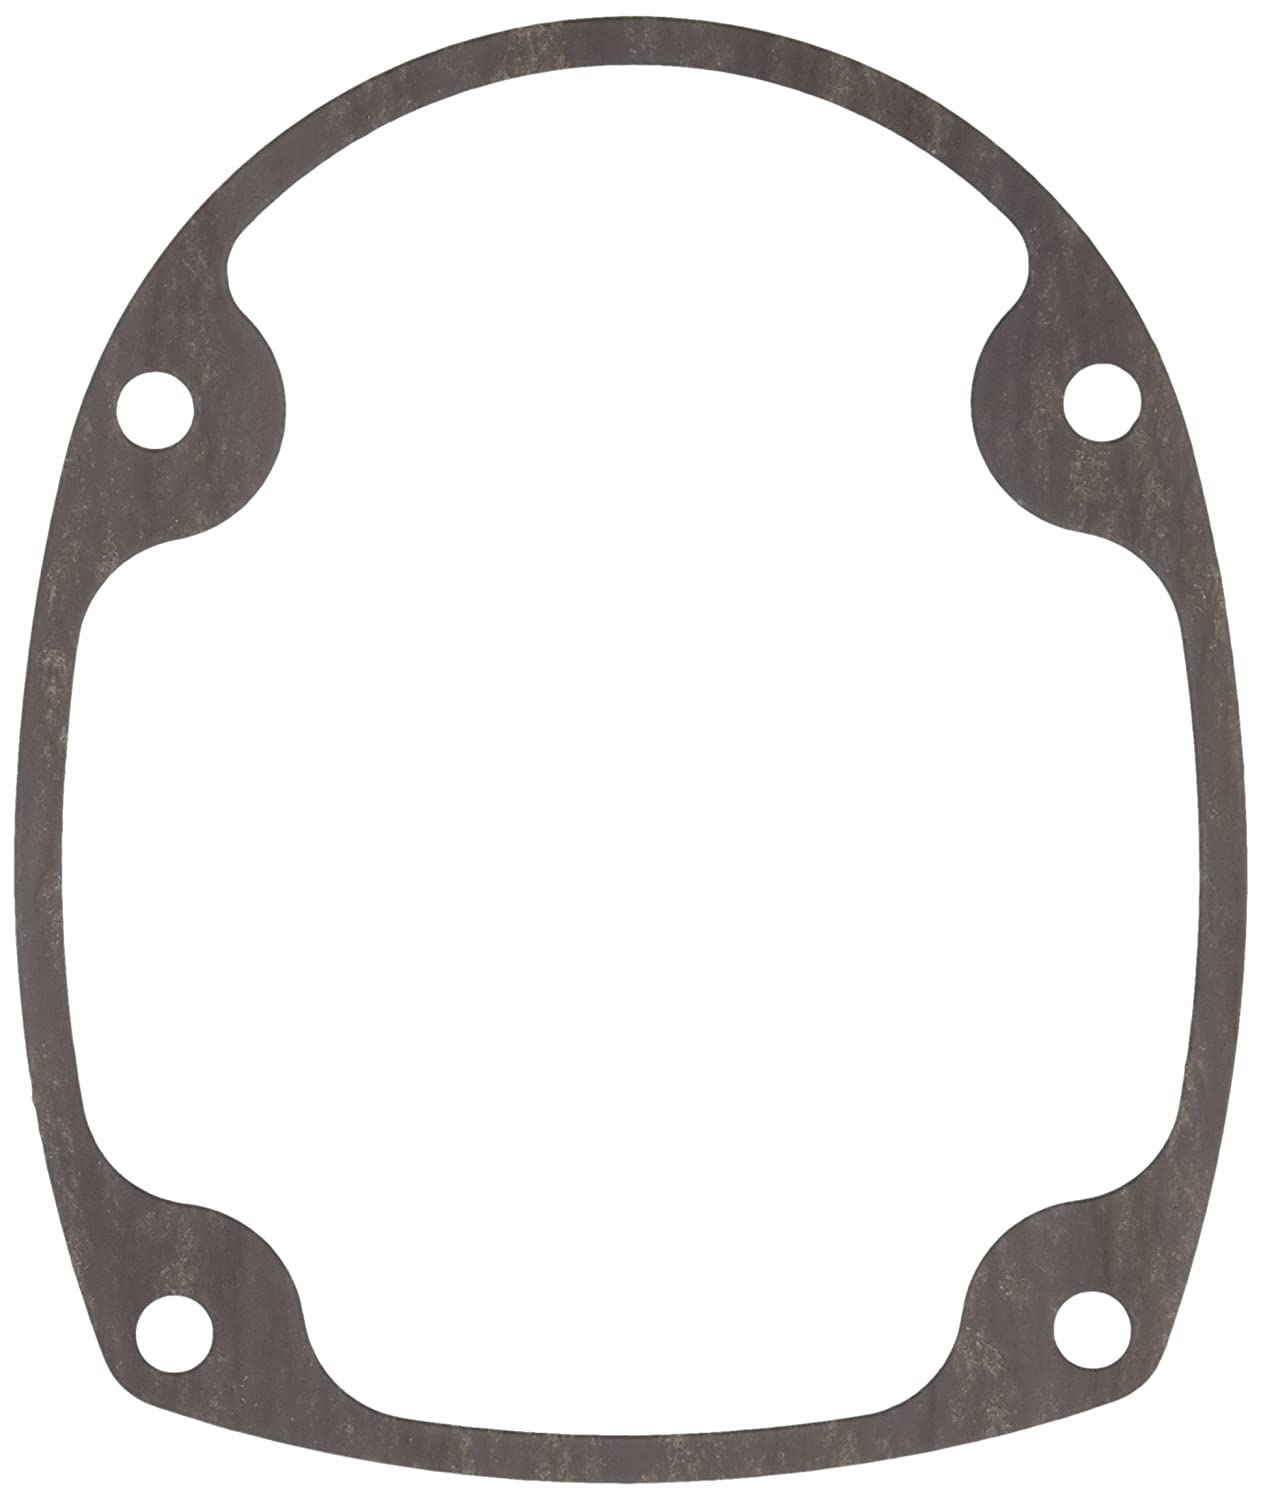 Hitachi 877325 Replacement Part for Power Tool Gasket